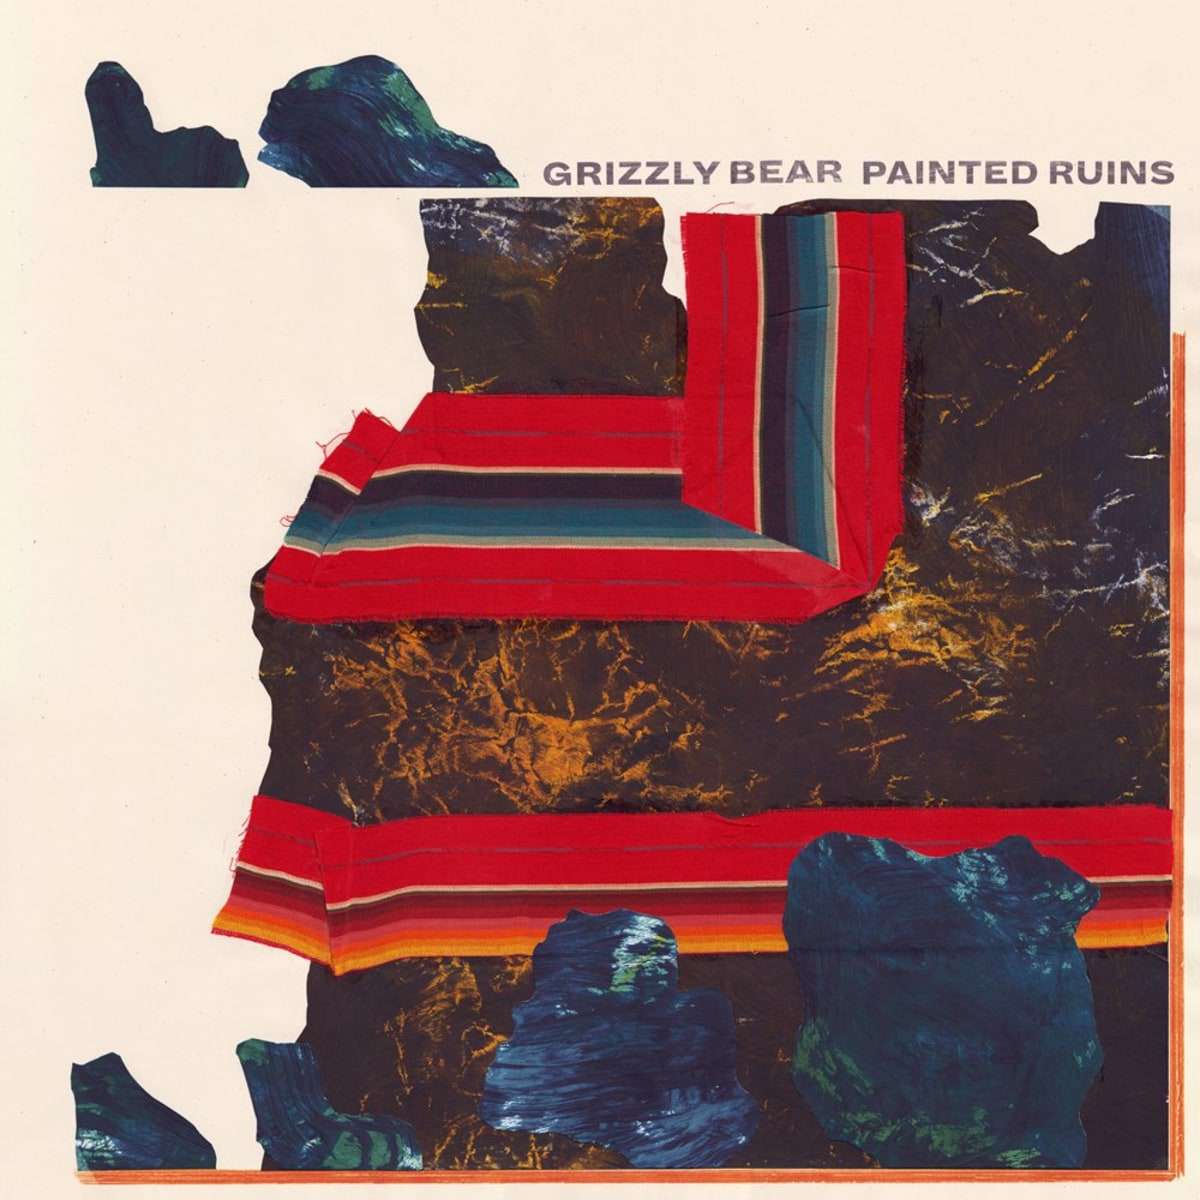 40-Grizzly Bear-Painted Ruins.jpg